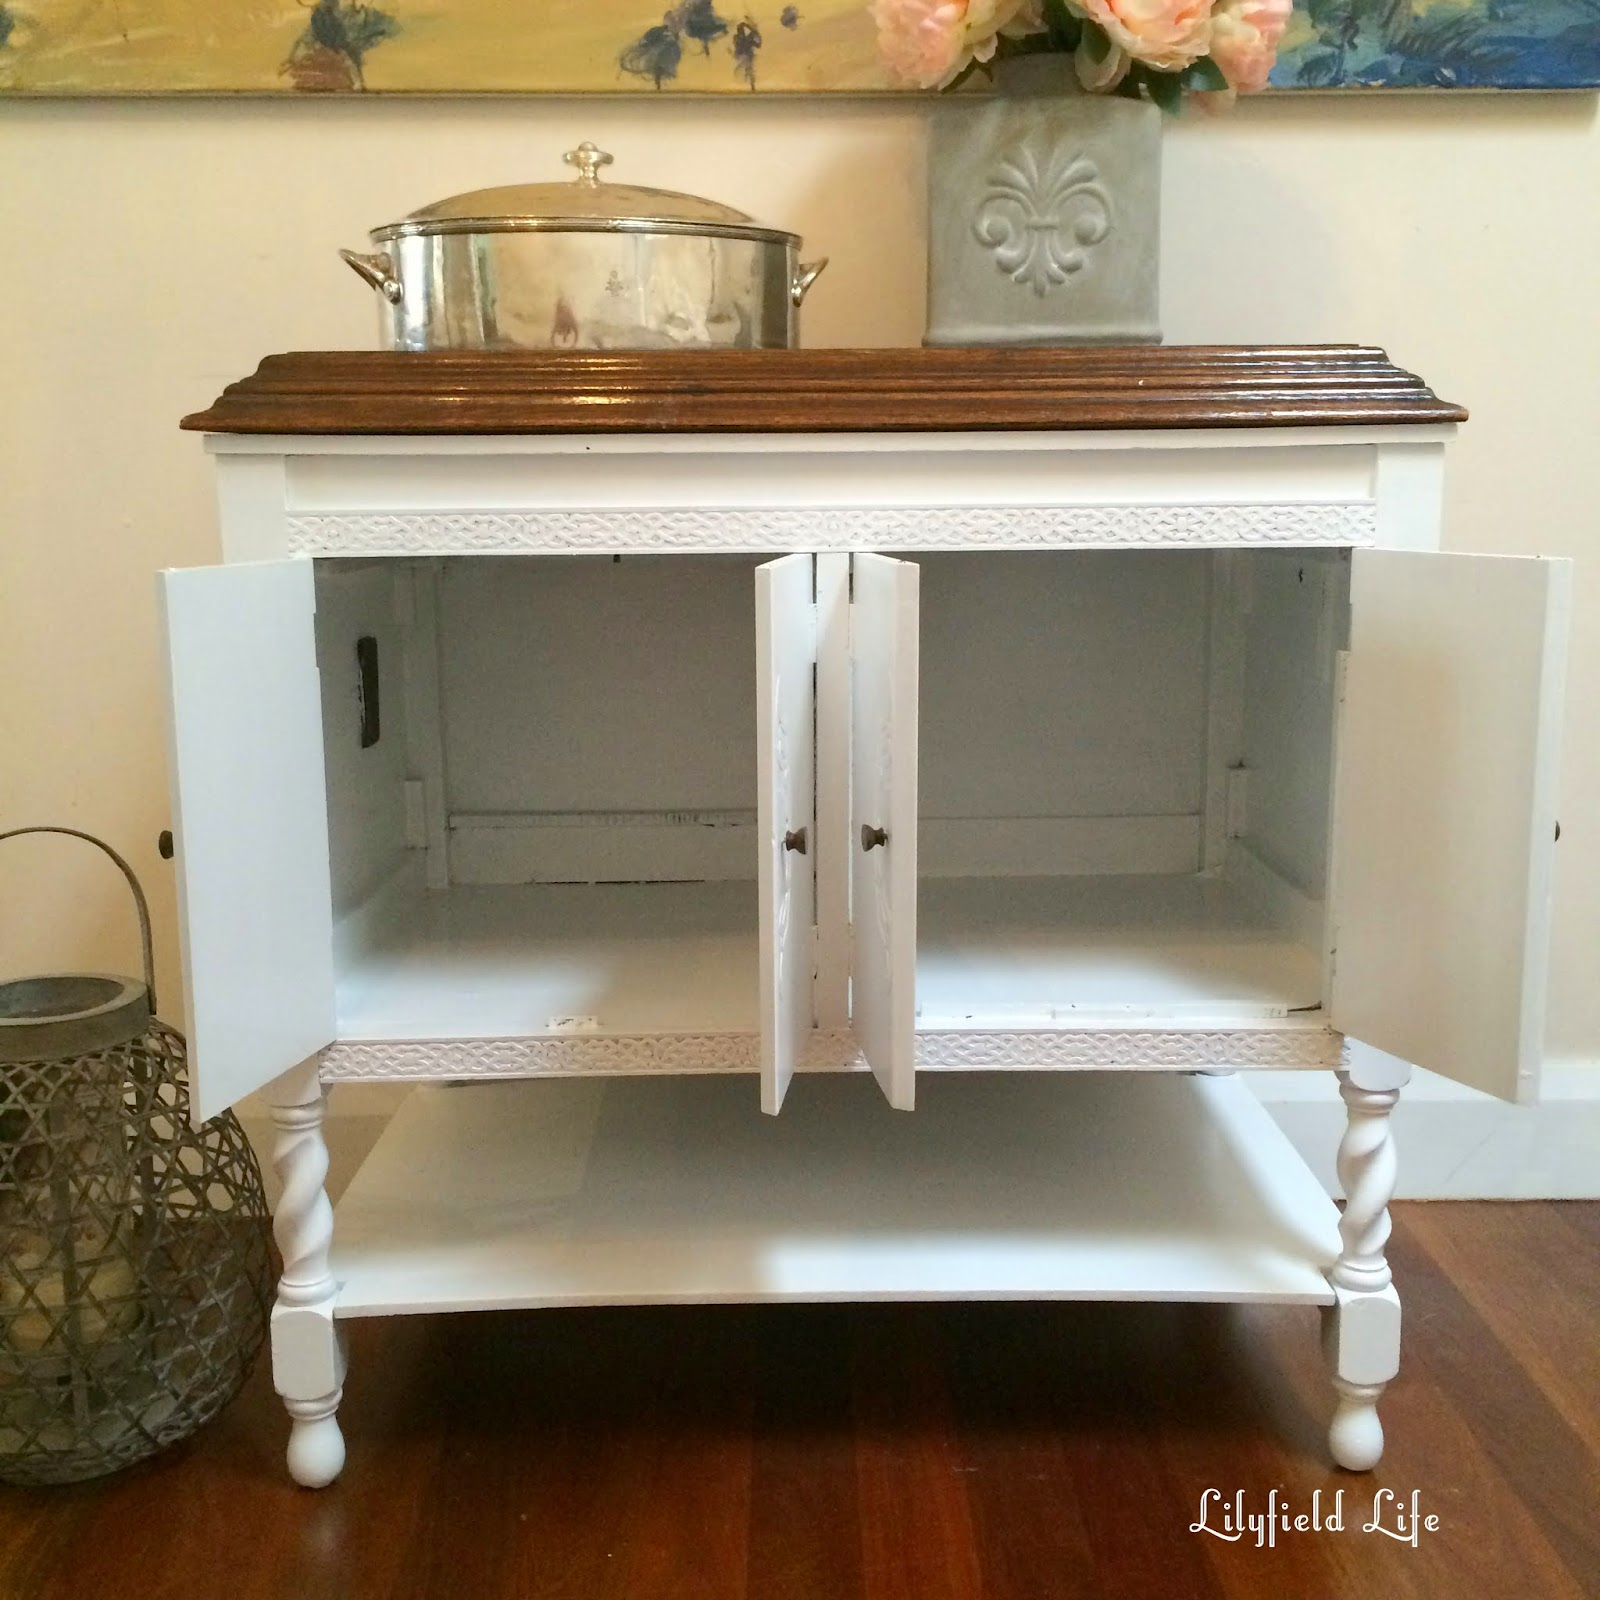 hand painted furniture sydney Lilyfield Life